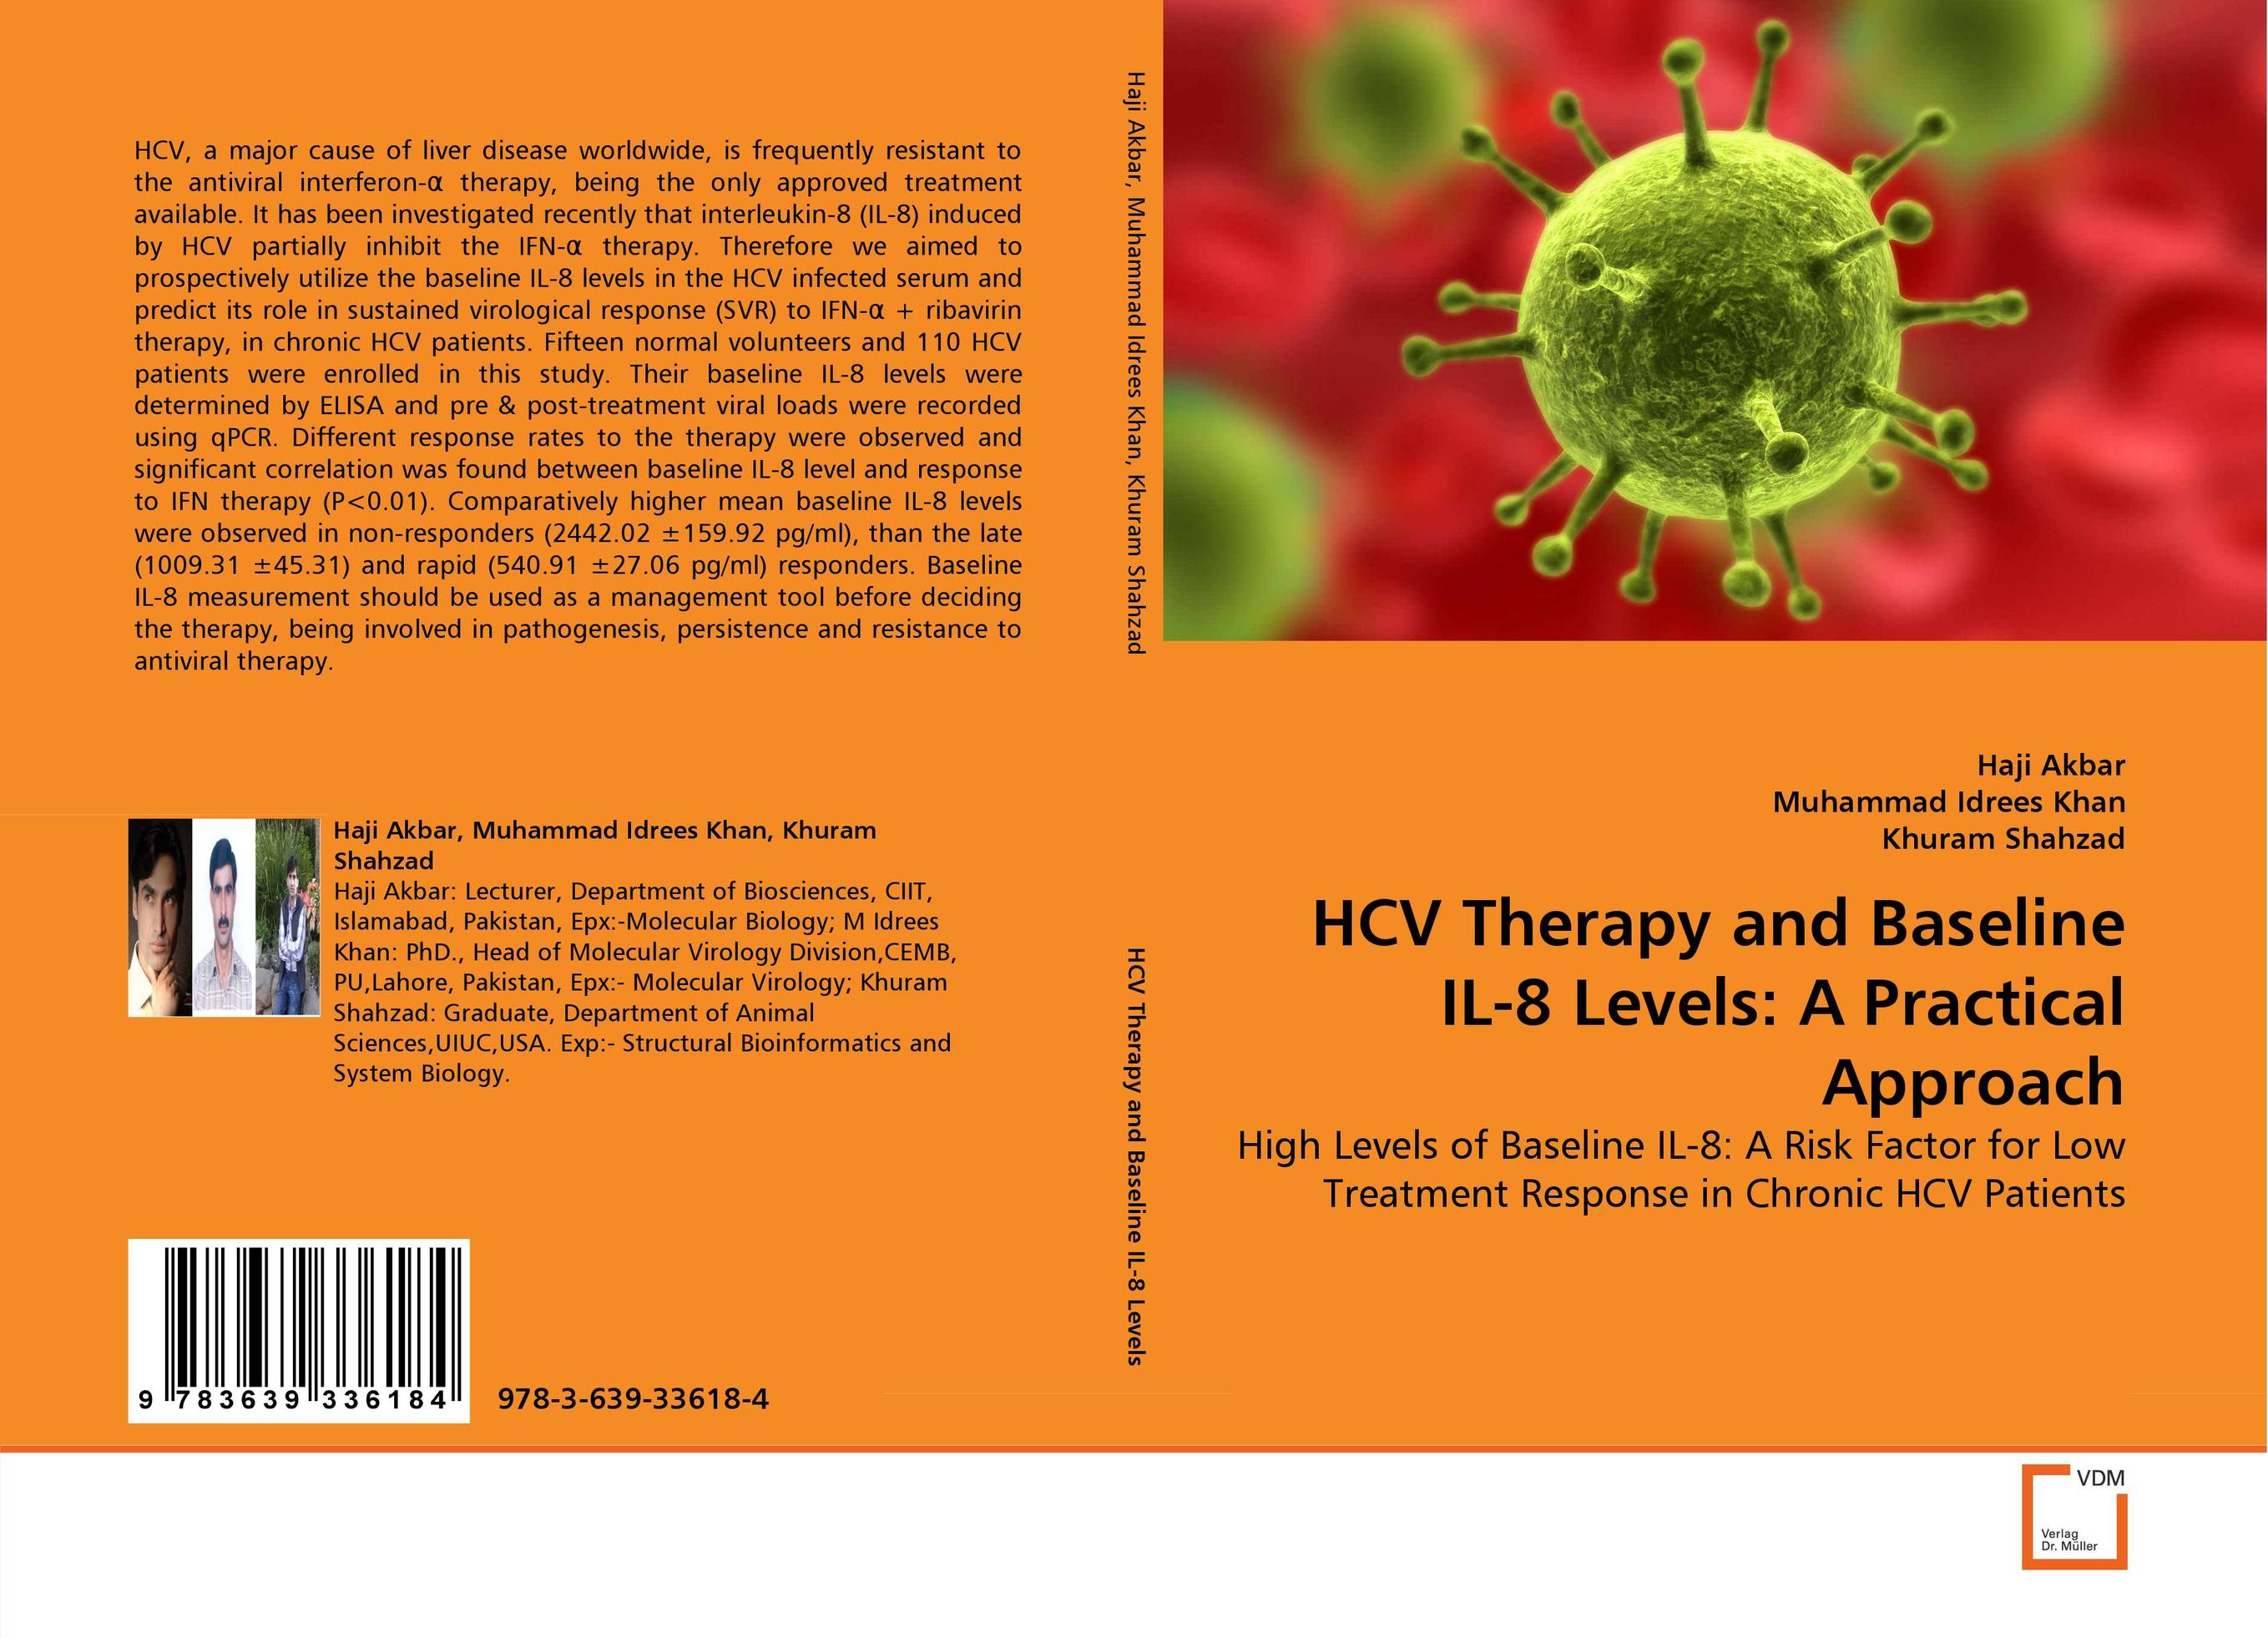 HCV Therapy and Baseline IL-8 Levels: A Practical Approach interleukin 1 polymorphism and treatment response in hcv patients